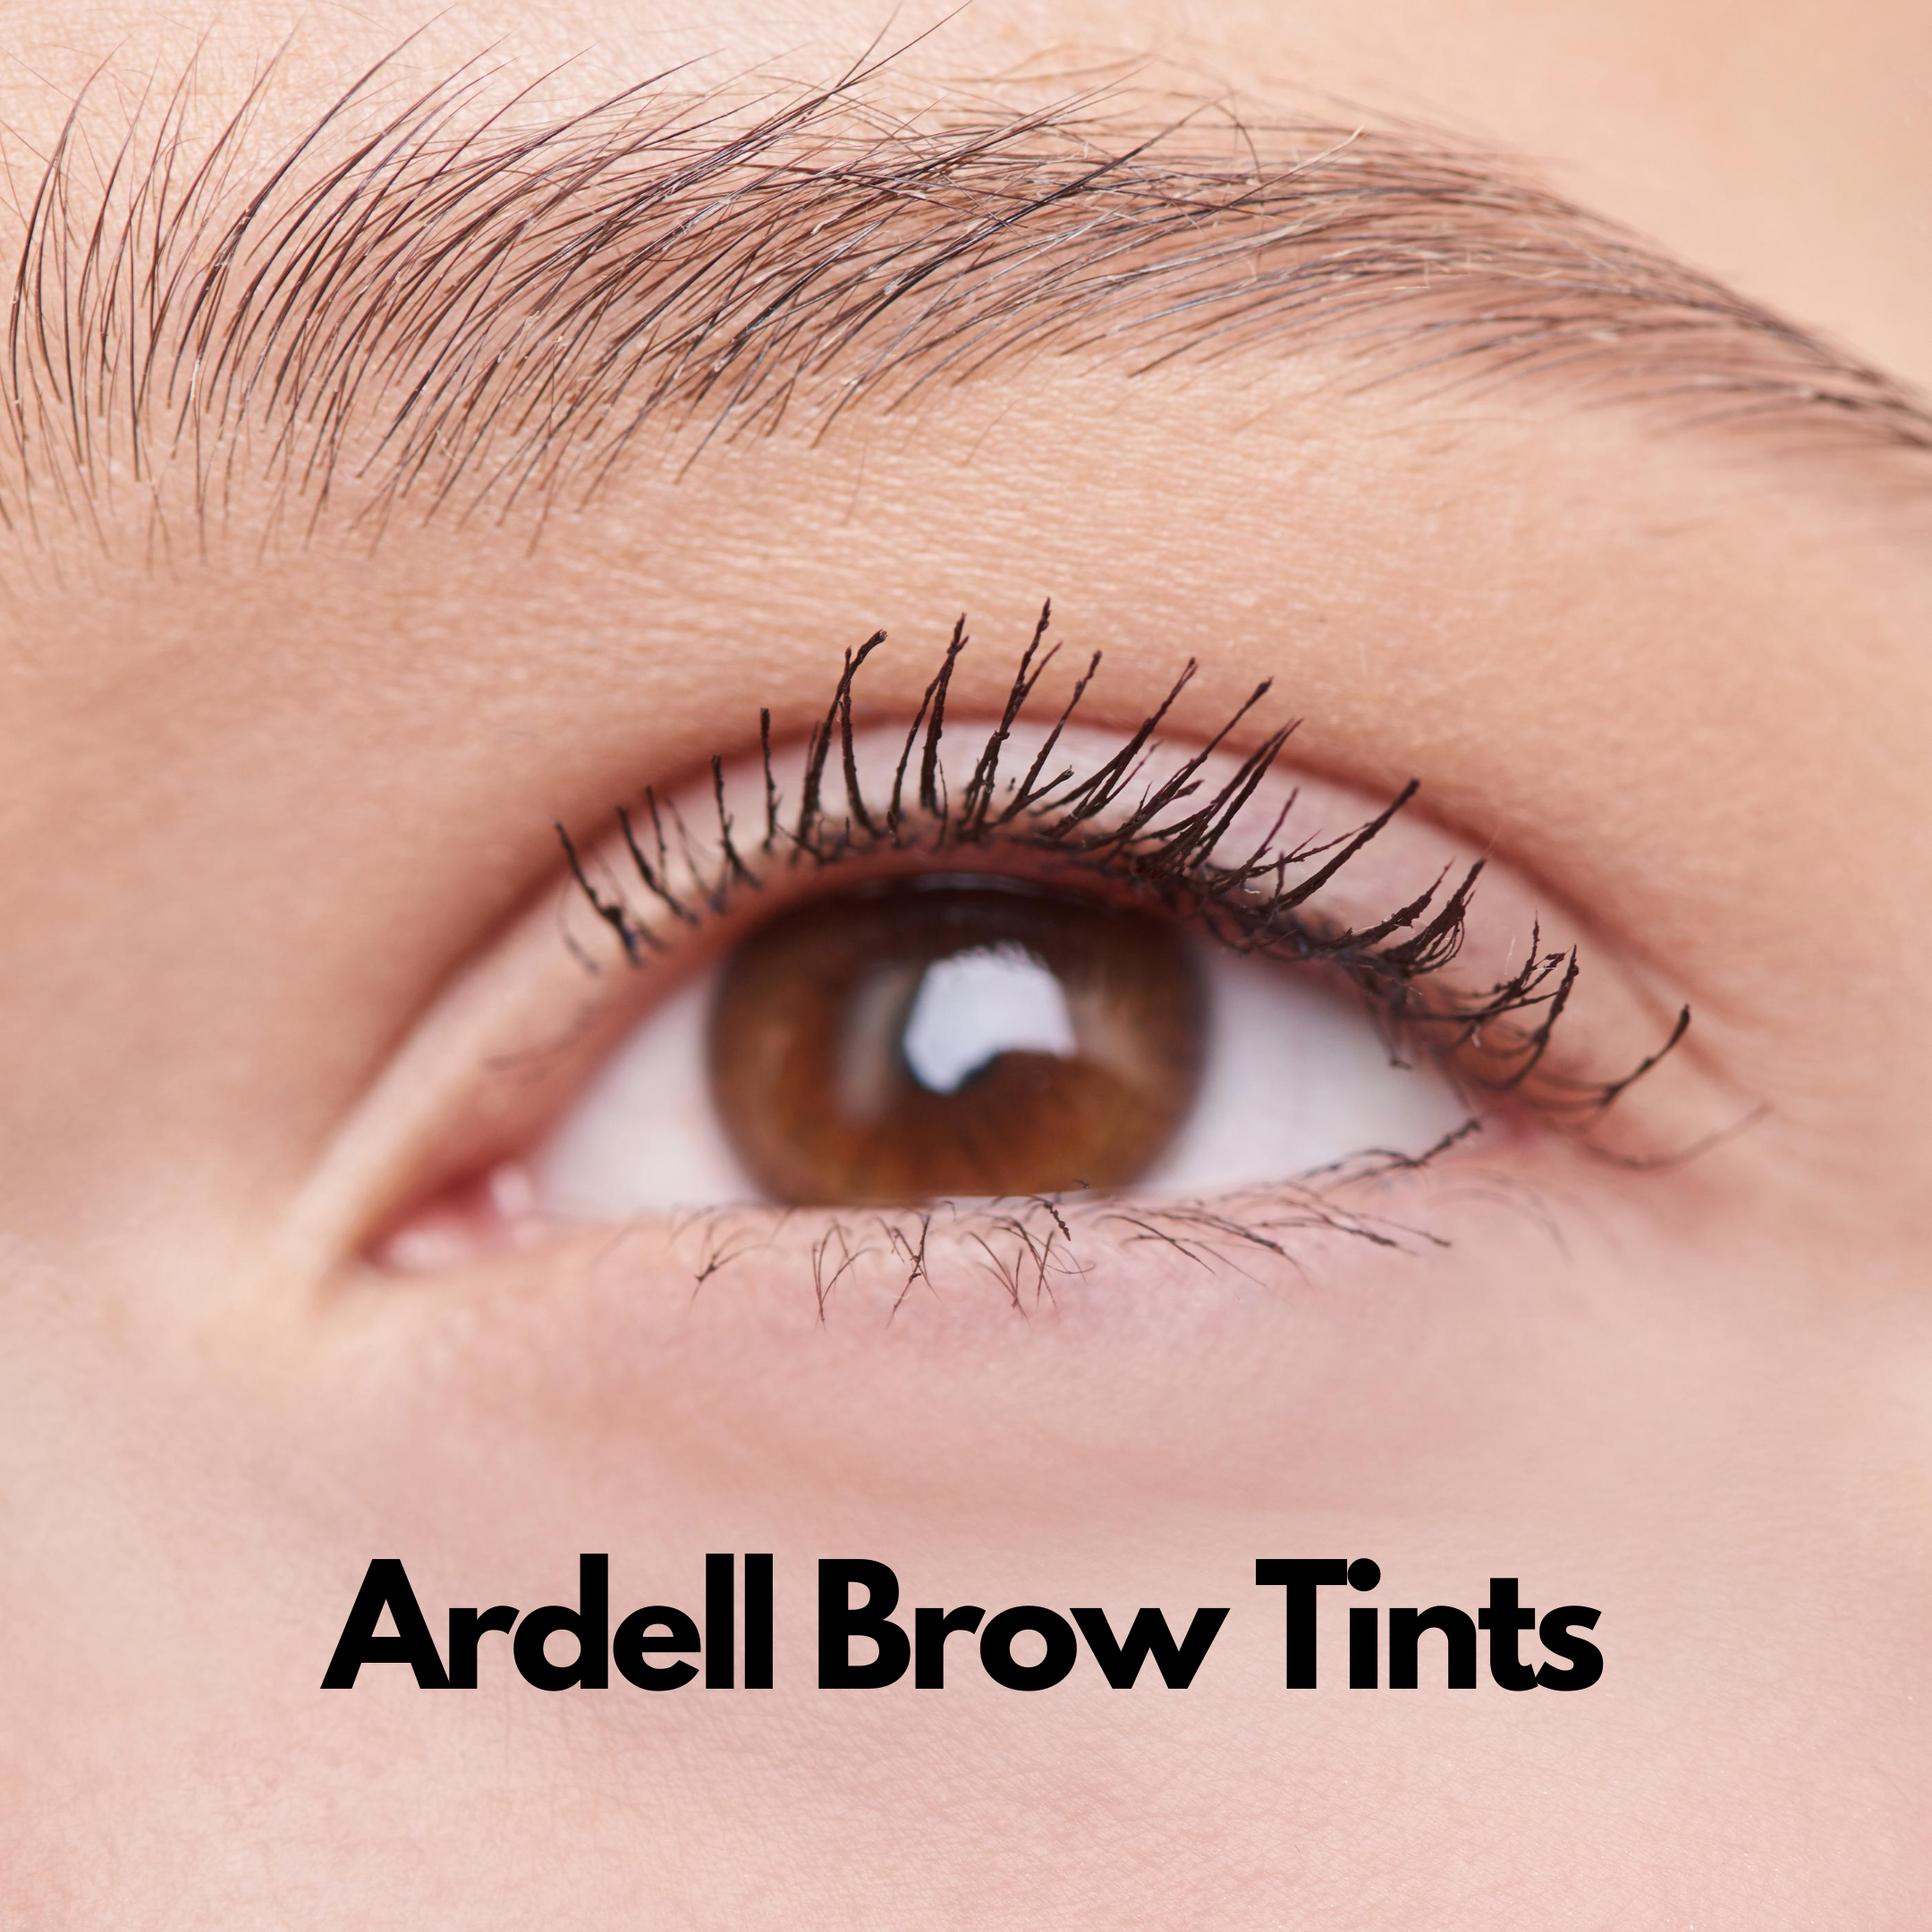 Introducing Ardell Brow Tints